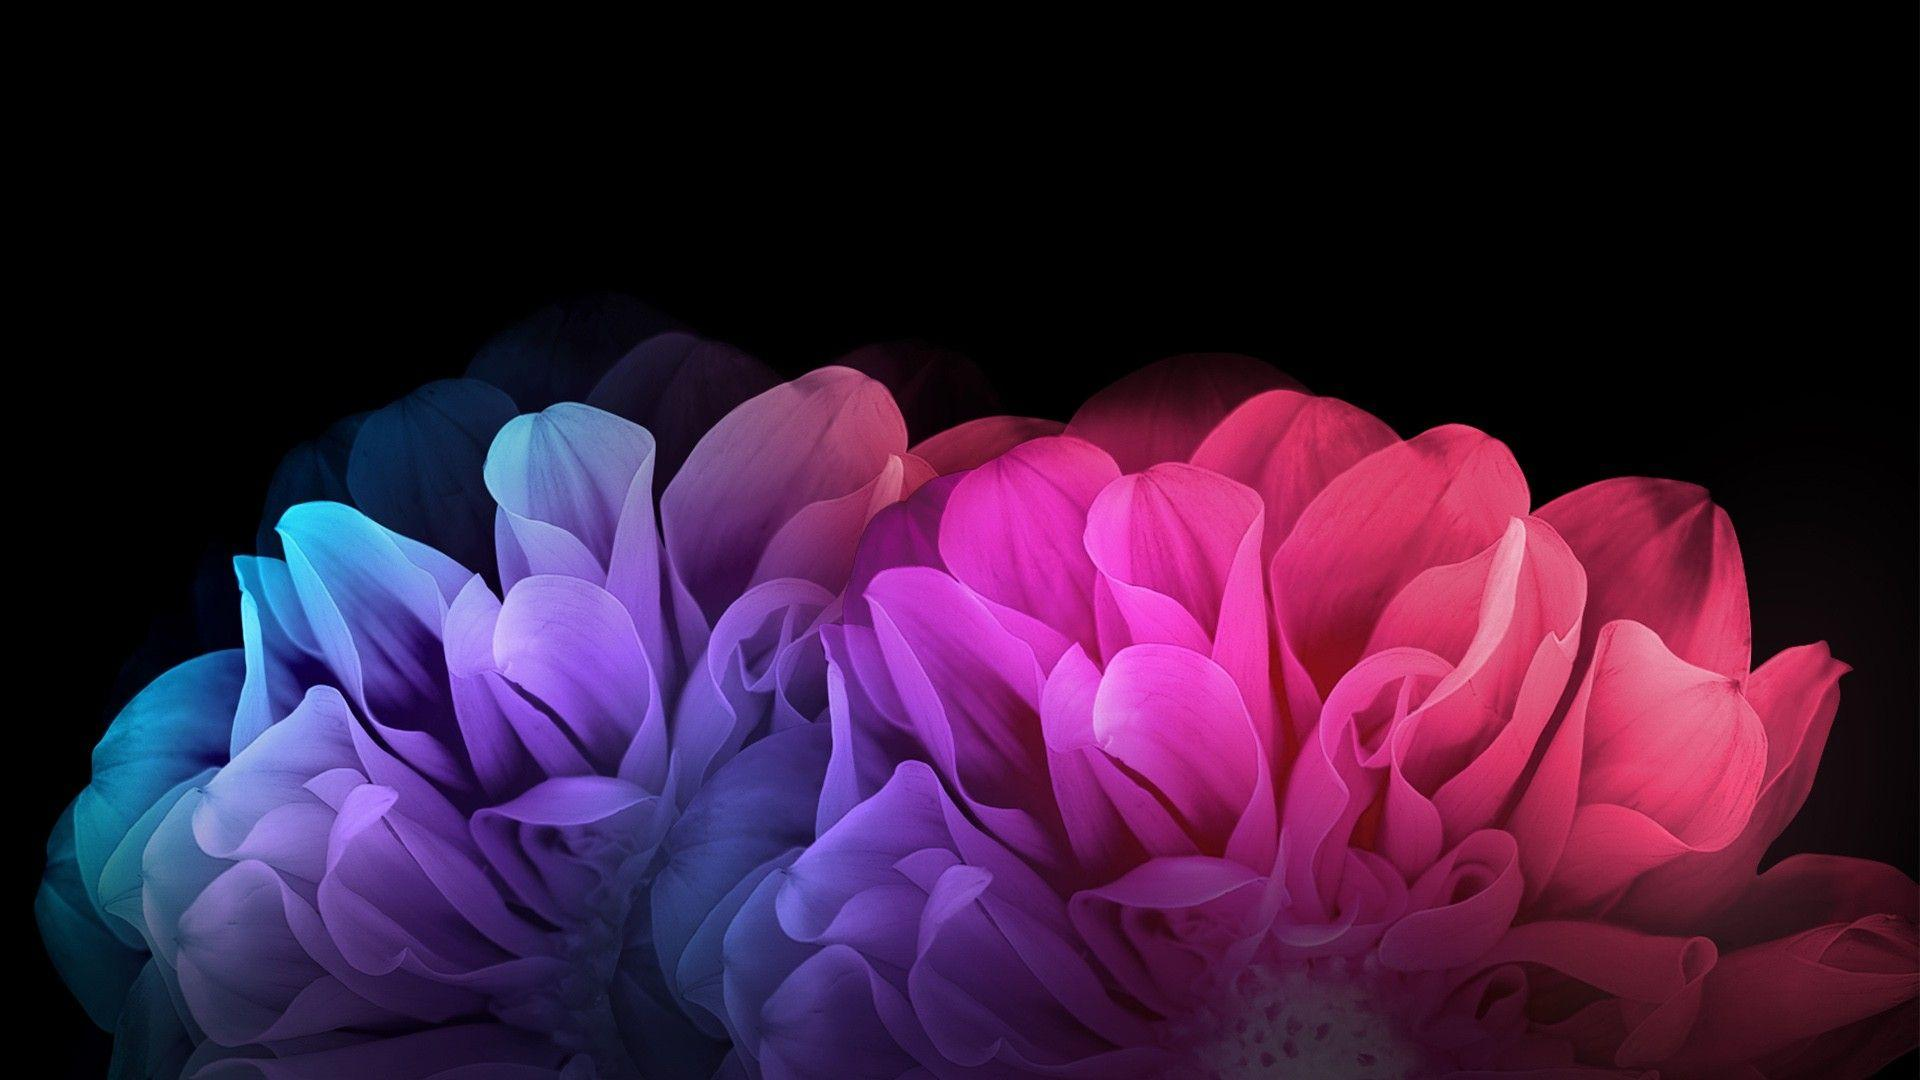 Colorful Flowers Dark Background Wallpapers | HD Wallpapers